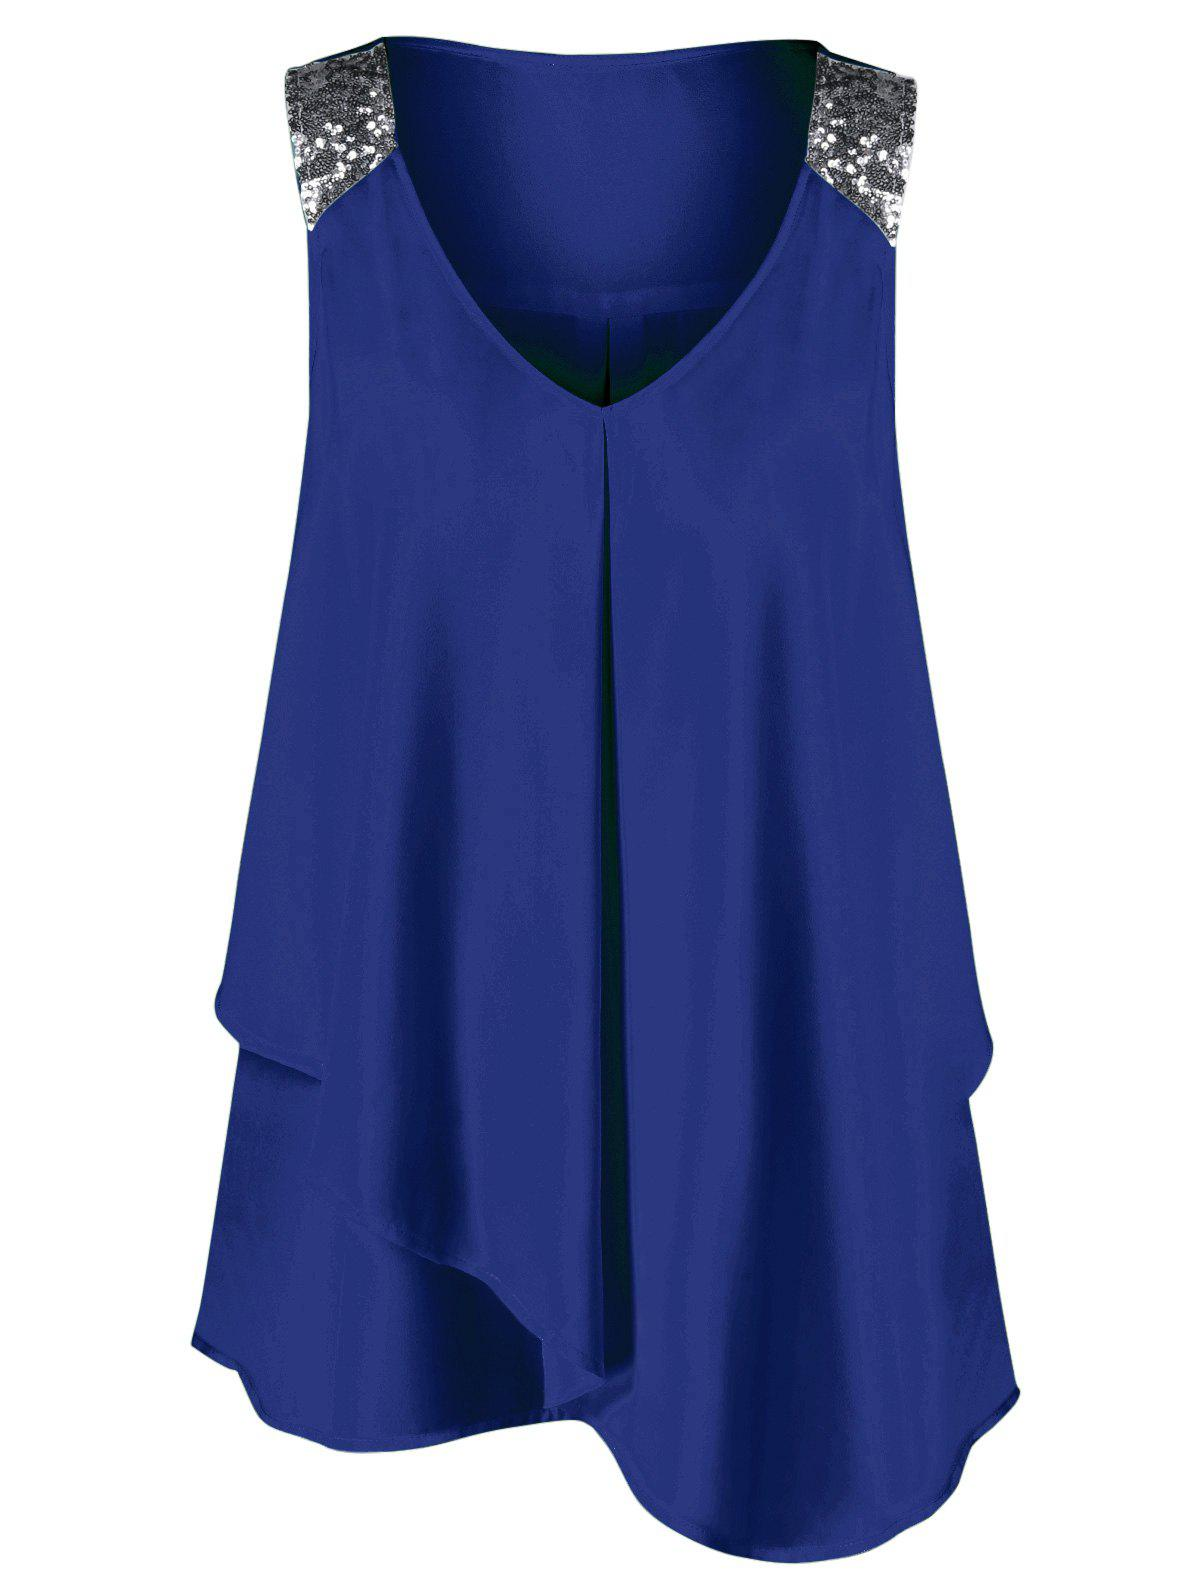 Plus Size Sequined Sleeveless Shoulder Overlap BlouseWOMEN<br><br>Size: 3XL; Color: ROYAL; Material: Polyester; Shirt Length: Long; Sleeve Length: Sleeveless; Collar: V-Neck; Style: Fashion; Season: Summer; Pattern Type: Others; Weight: 0.2200kg; Package Contents: 1 x Blouse;